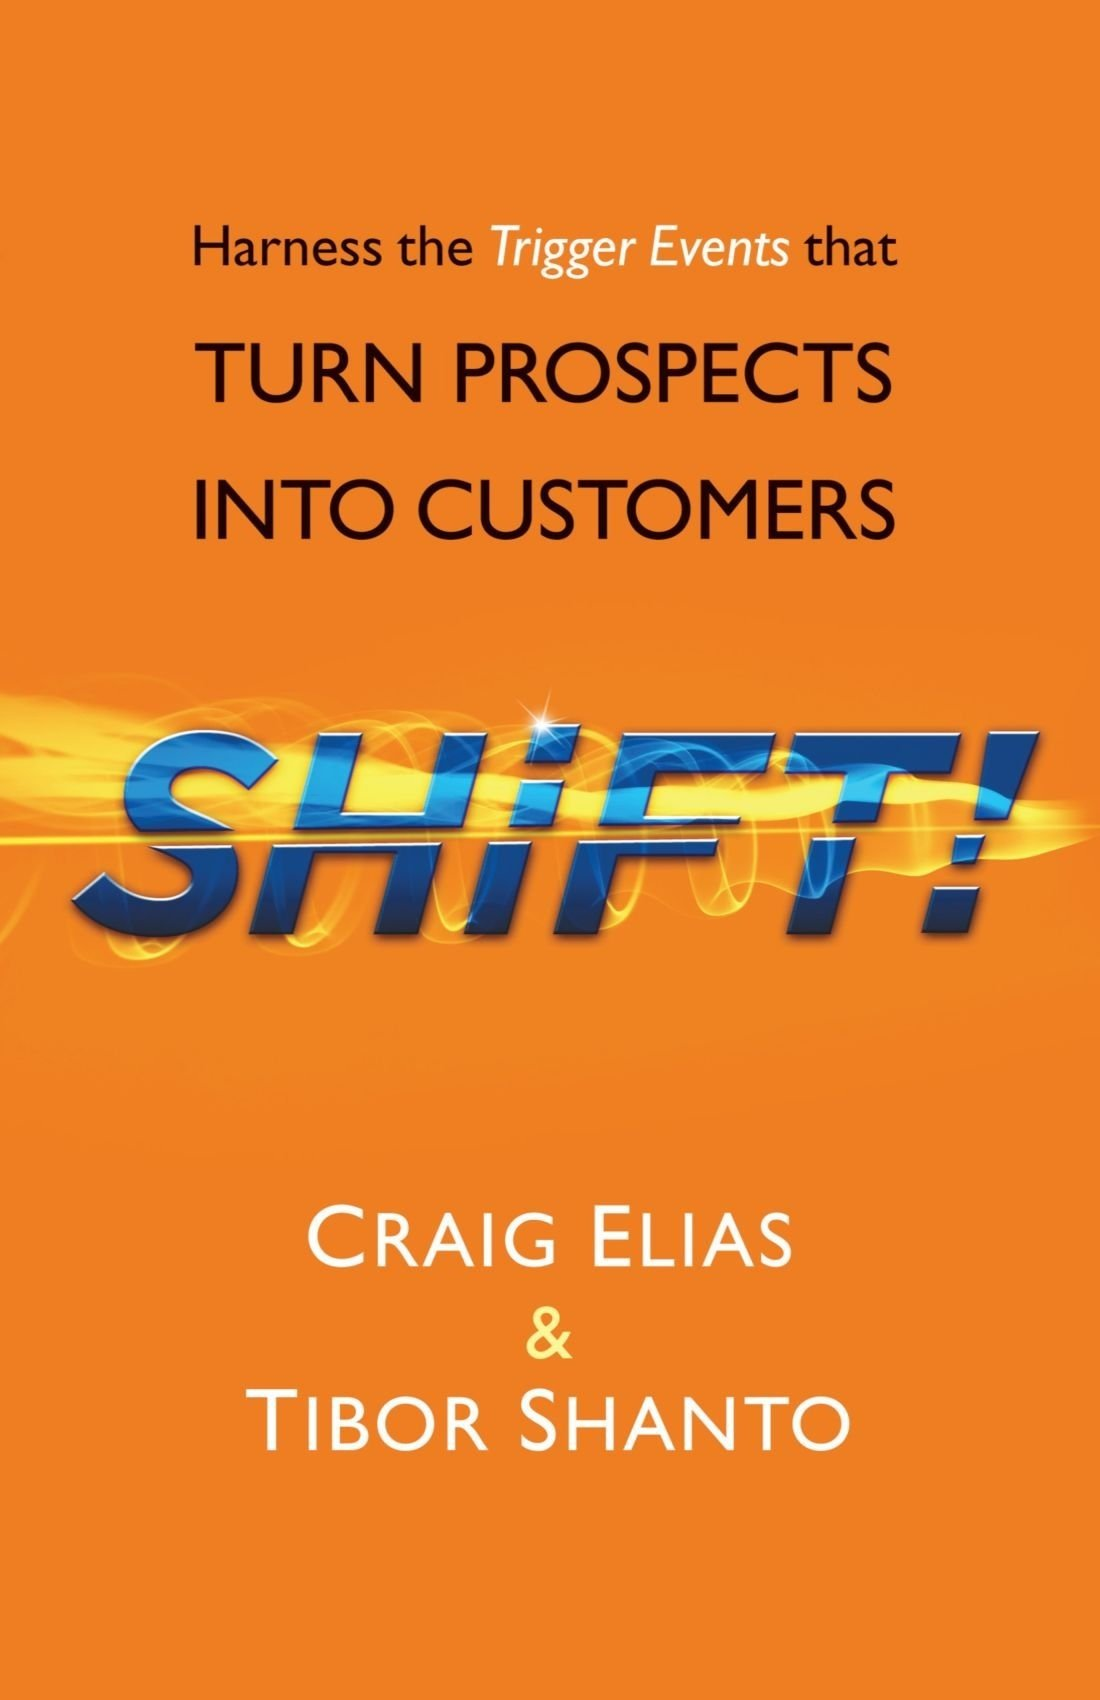 Shift! Harness the Trigger Events that Turn Prospects Into Customers  - Crag Elias and Tibor Shanto